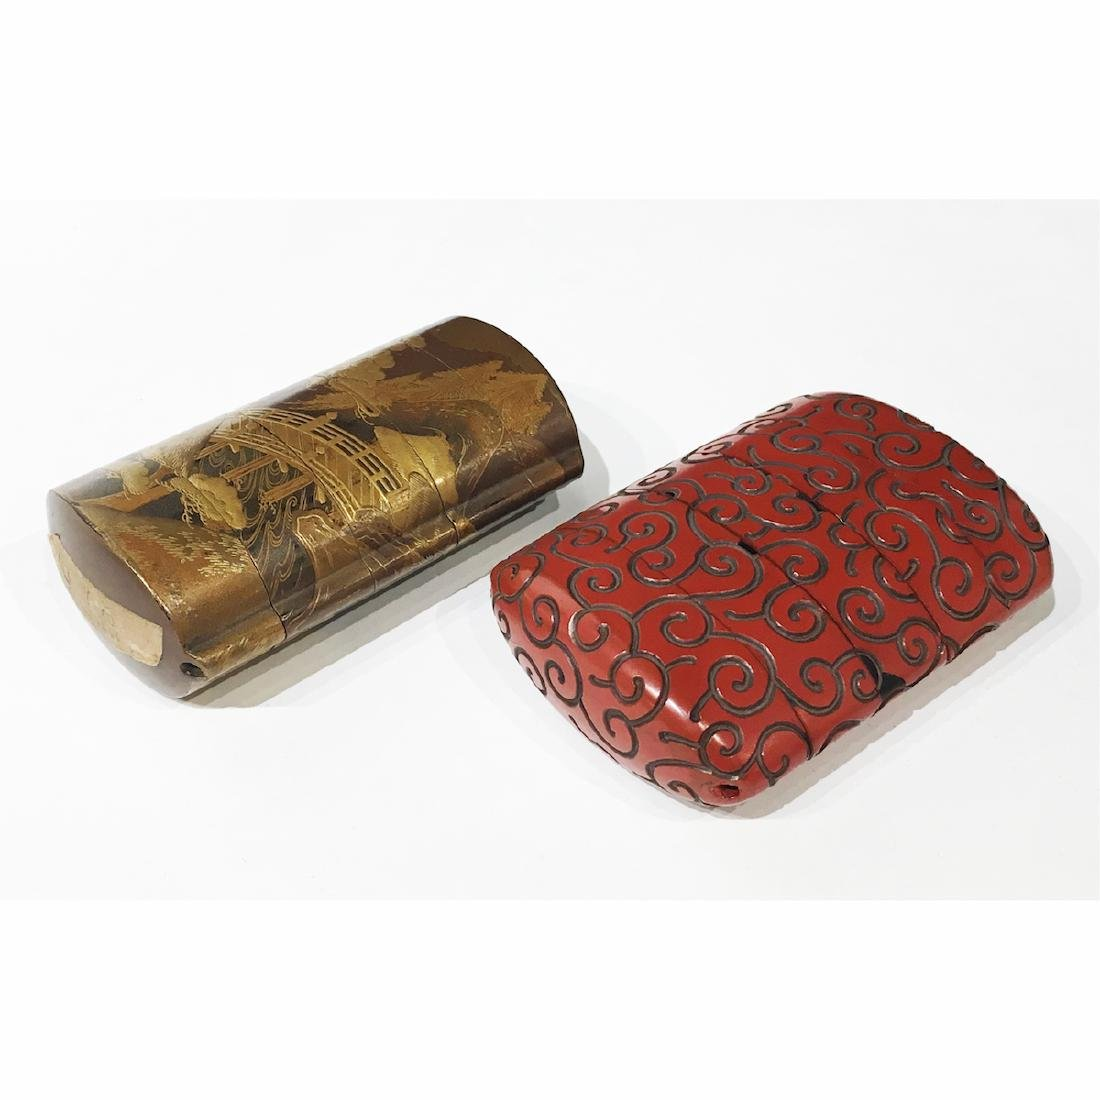 Two Japanese Lacquer Inro